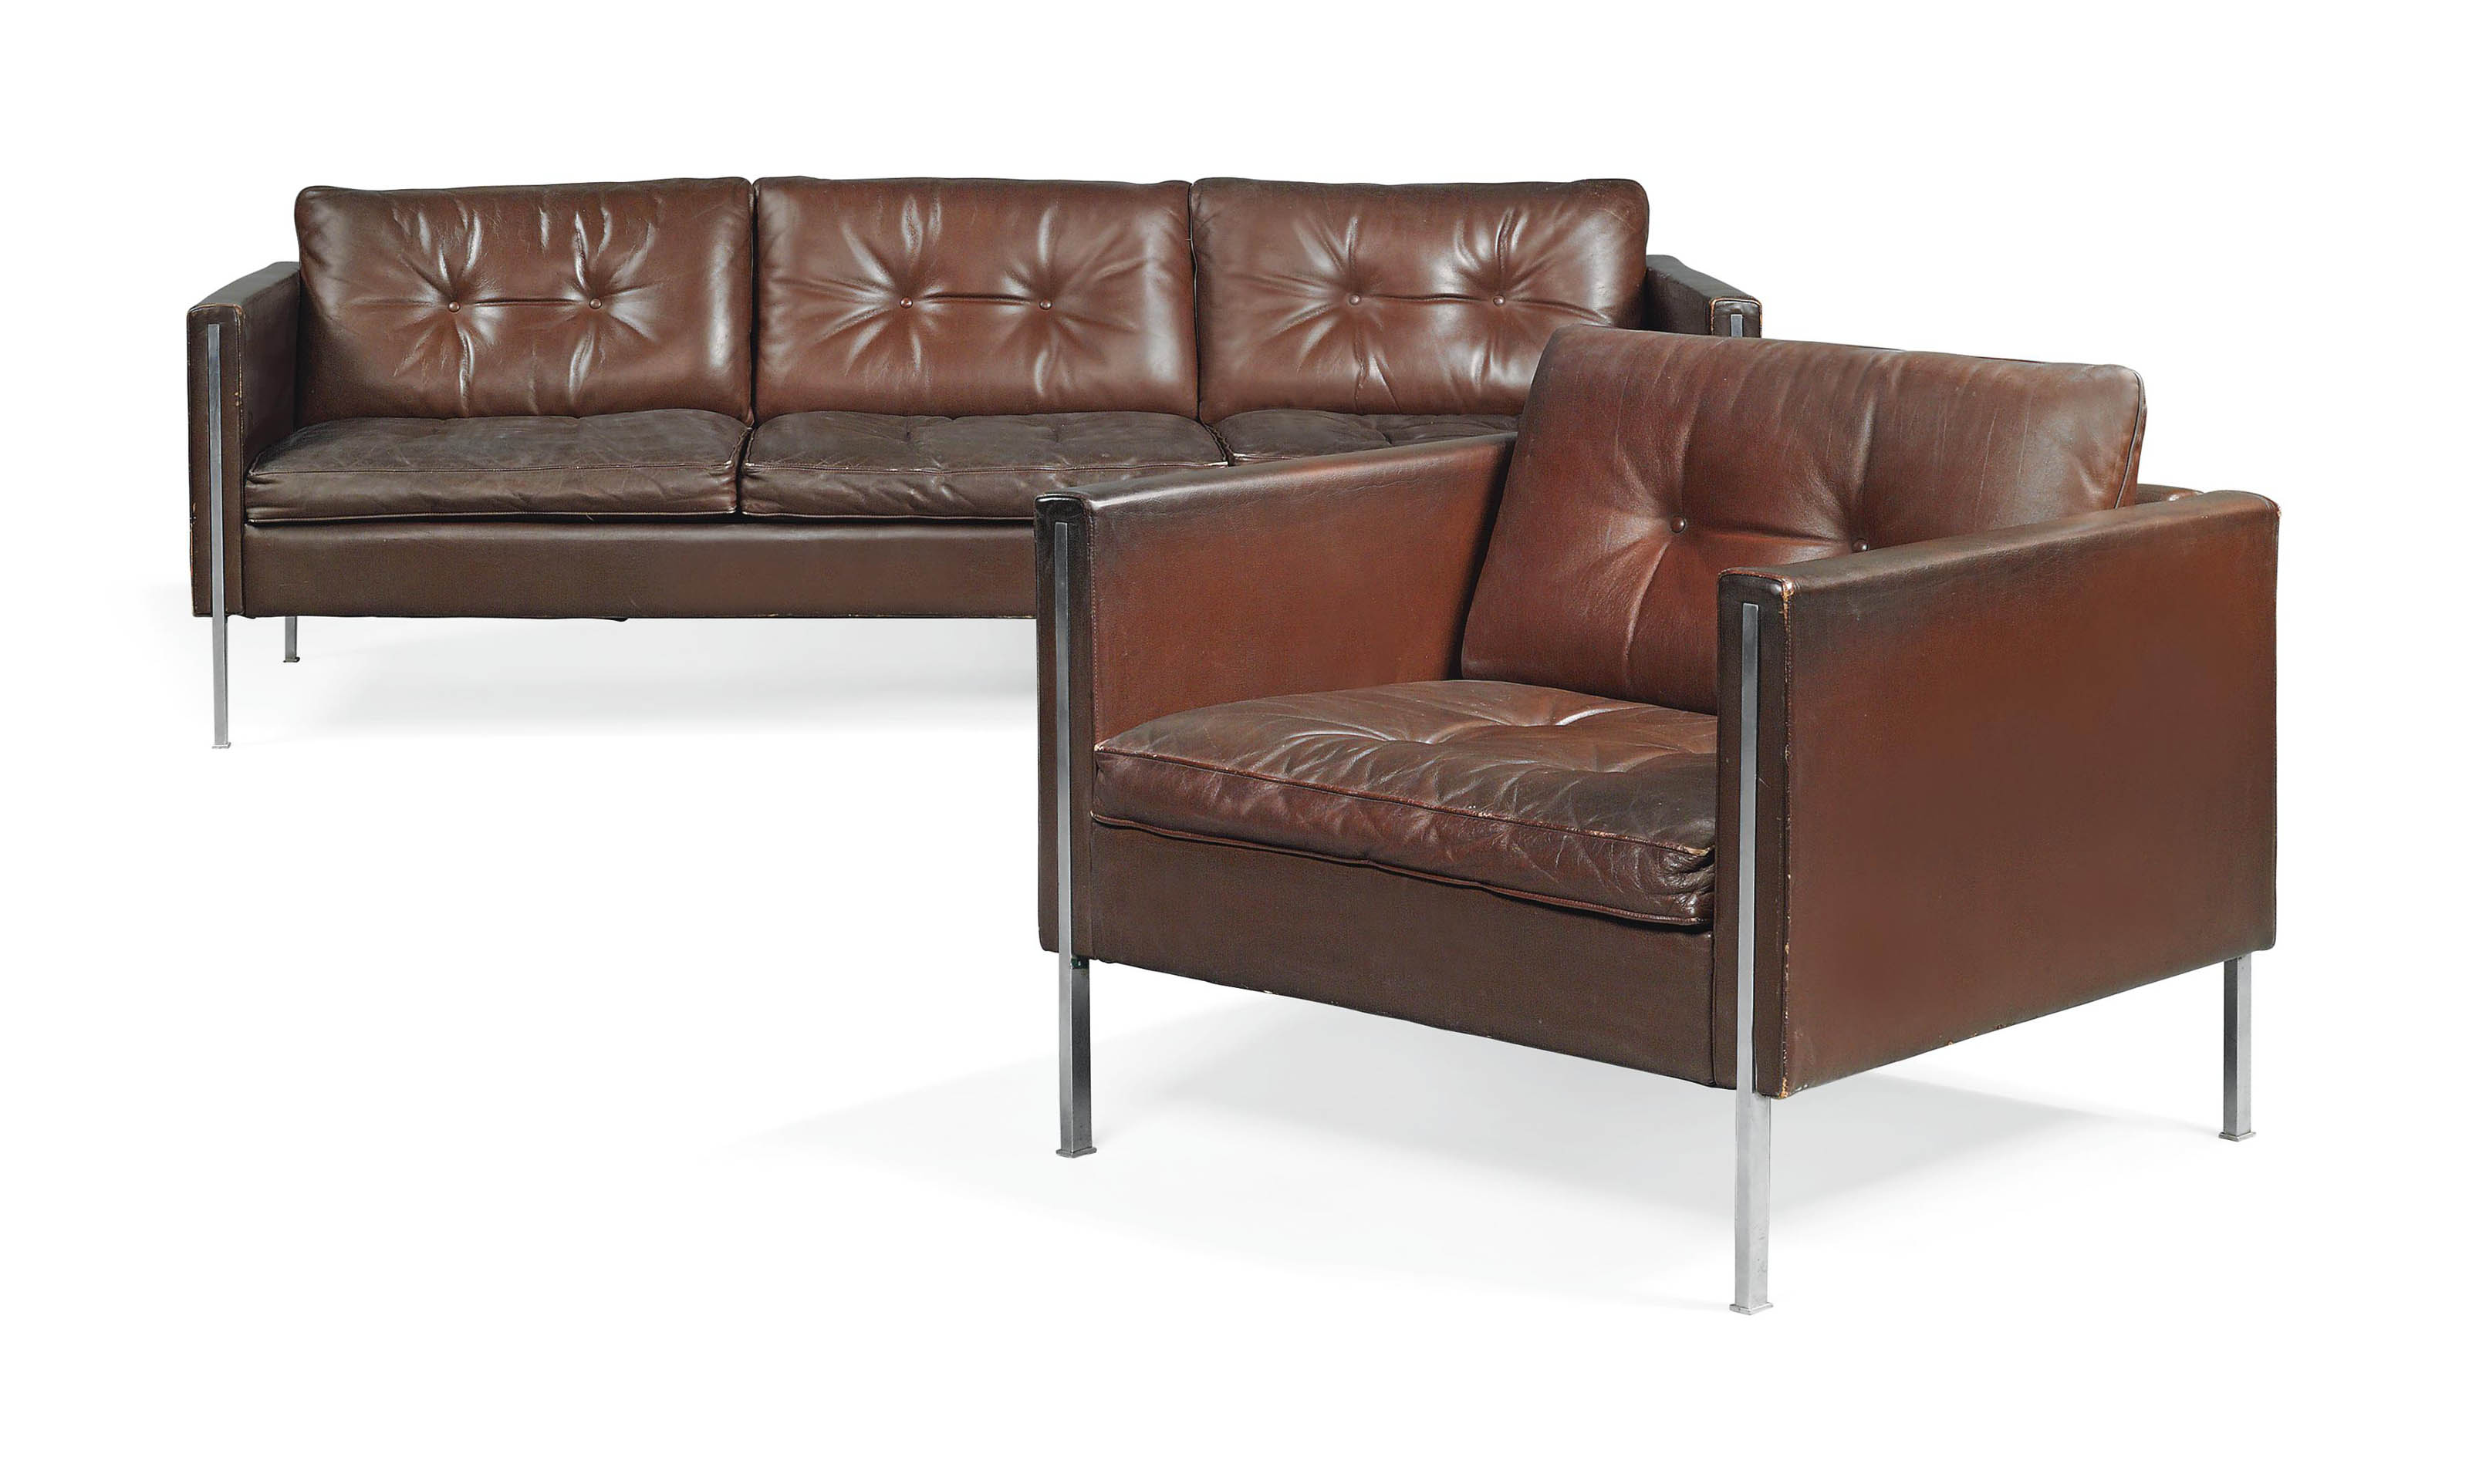 Pierre Paulin Sofa A Pierre Paulin Leather And Stainless Steel 442 Sofa And